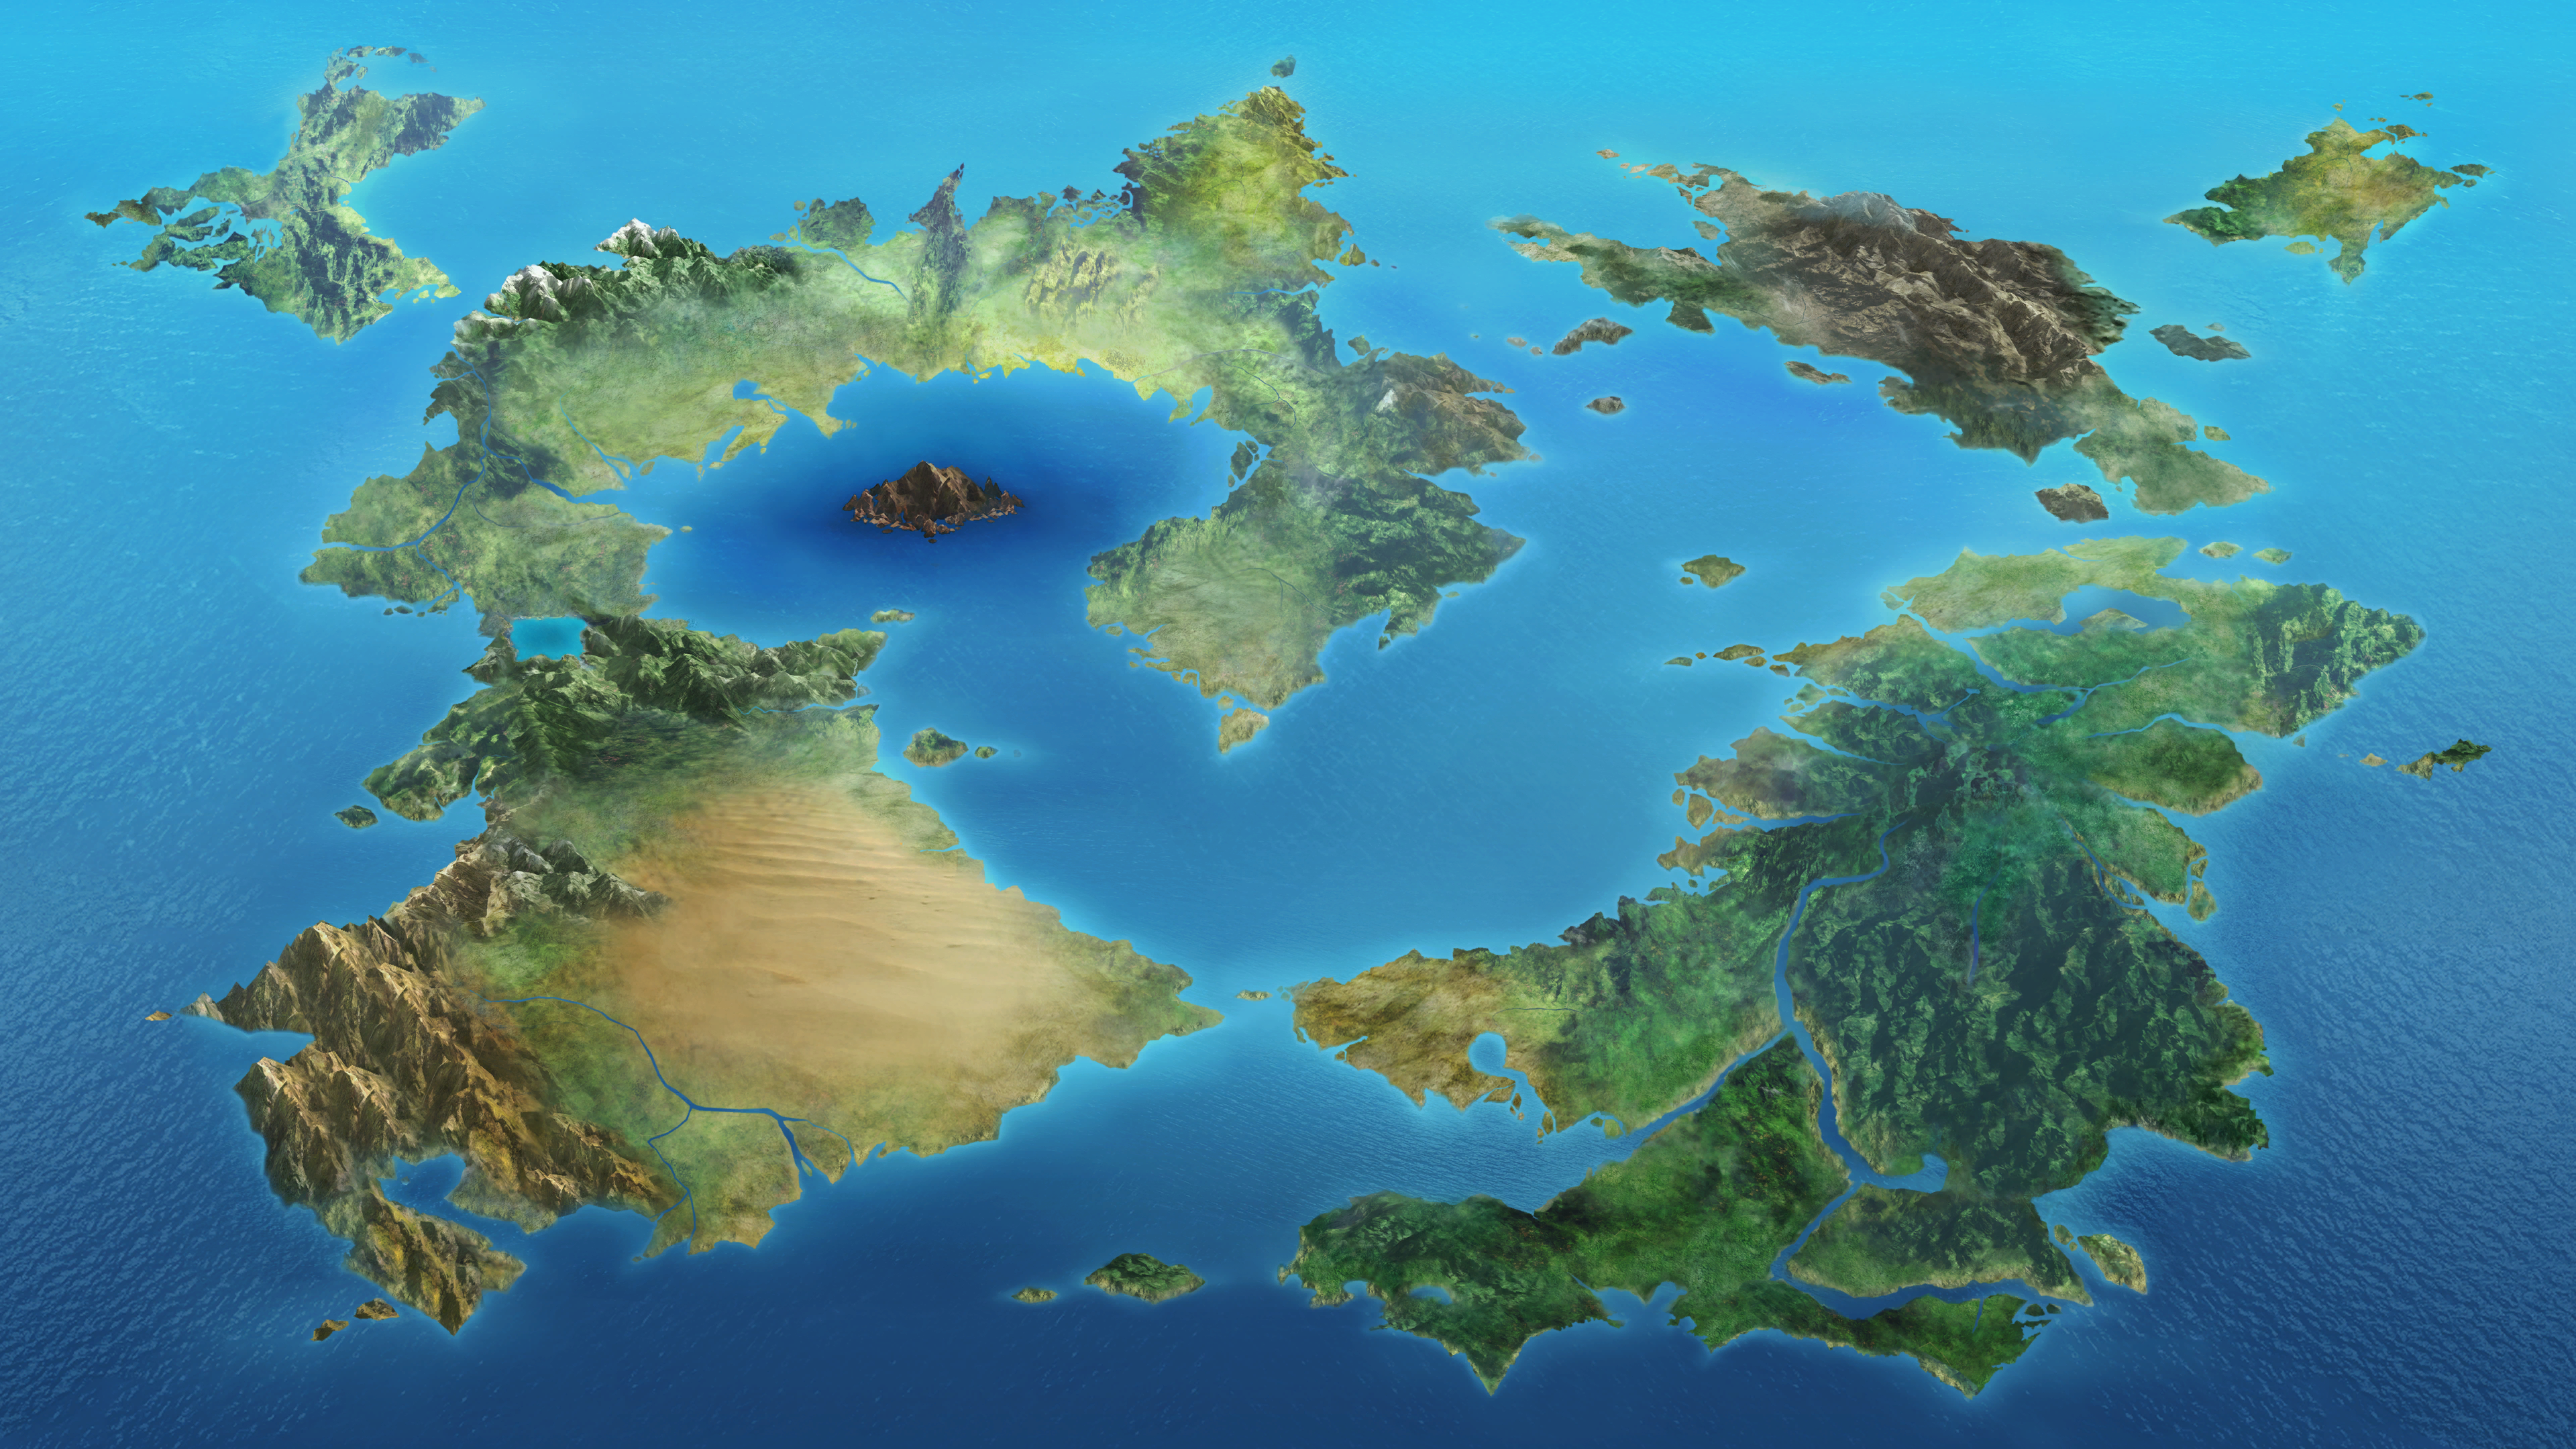 Pc computer dragon quest heroes world map the spriters resource click for full sized image world map gumiabroncs Image collections